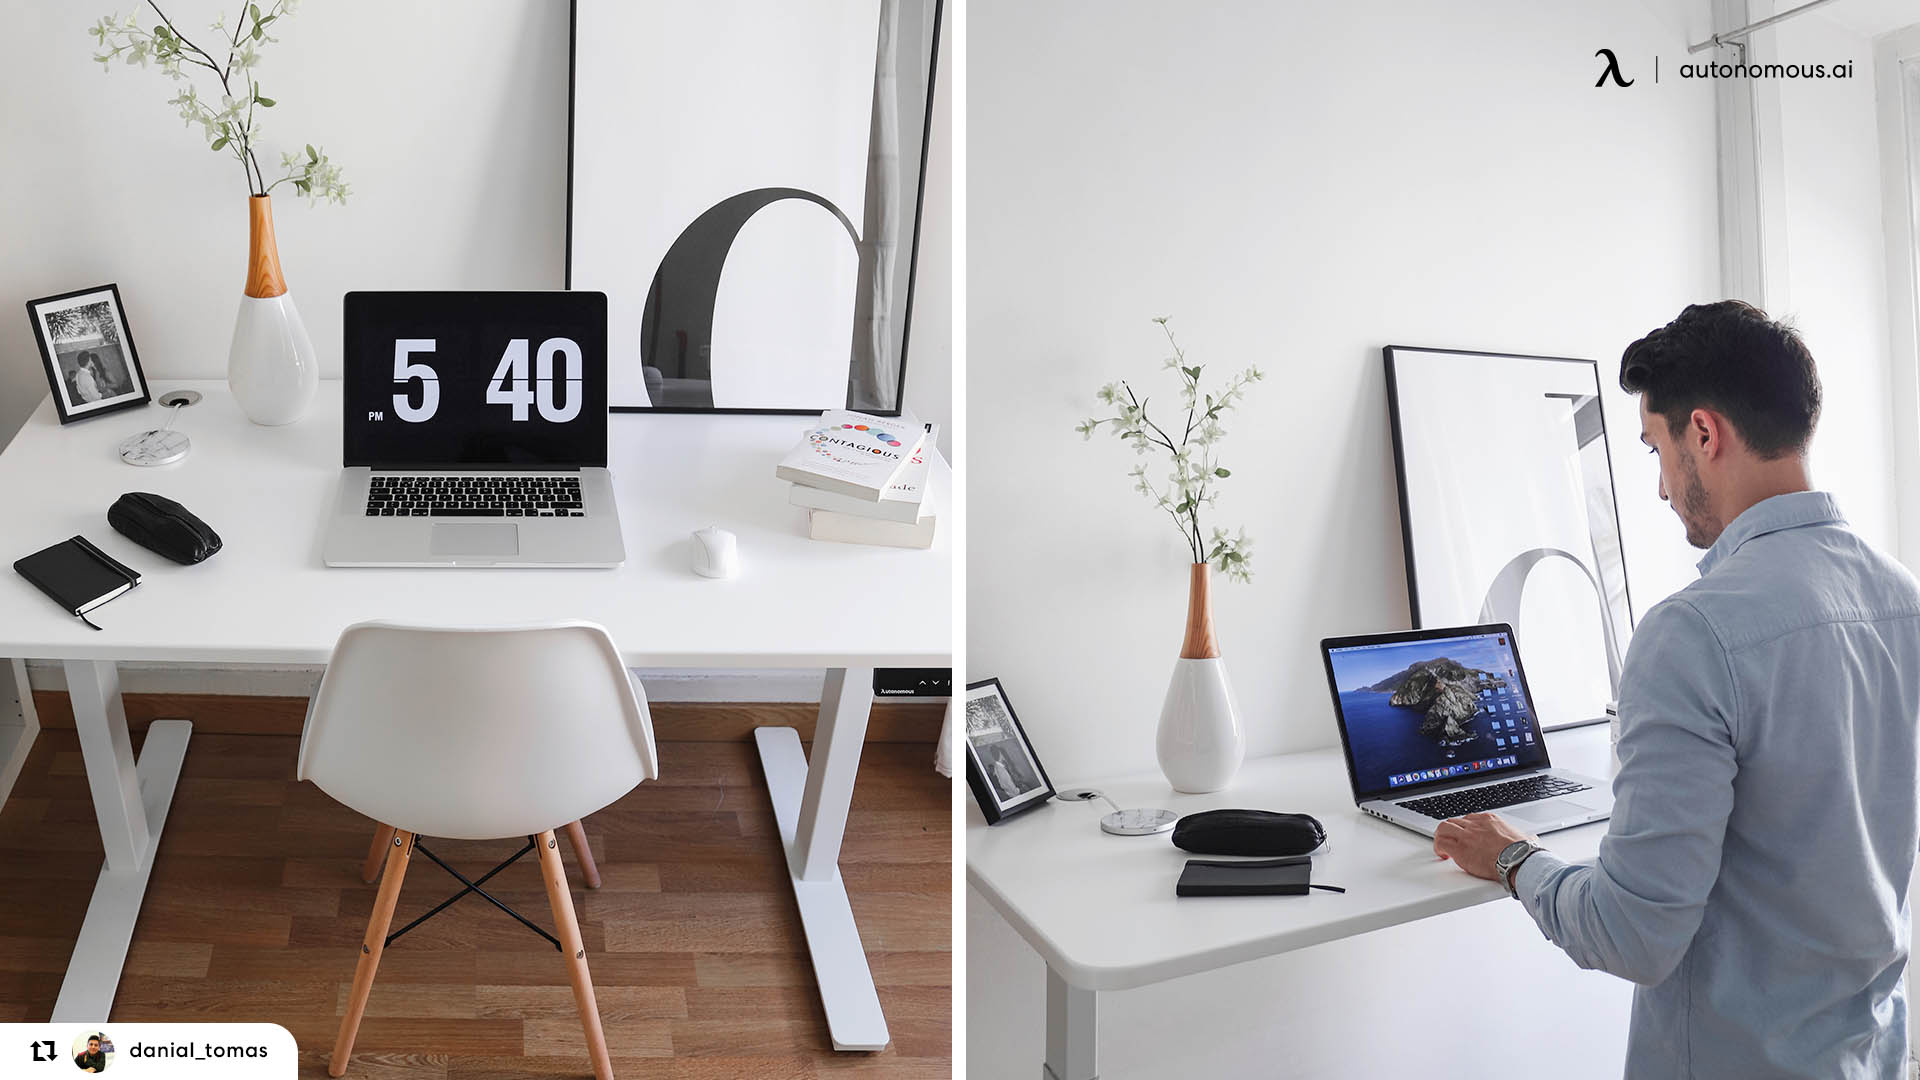 The combination between hybrid remote working and a flexible office seems to be a viable solution